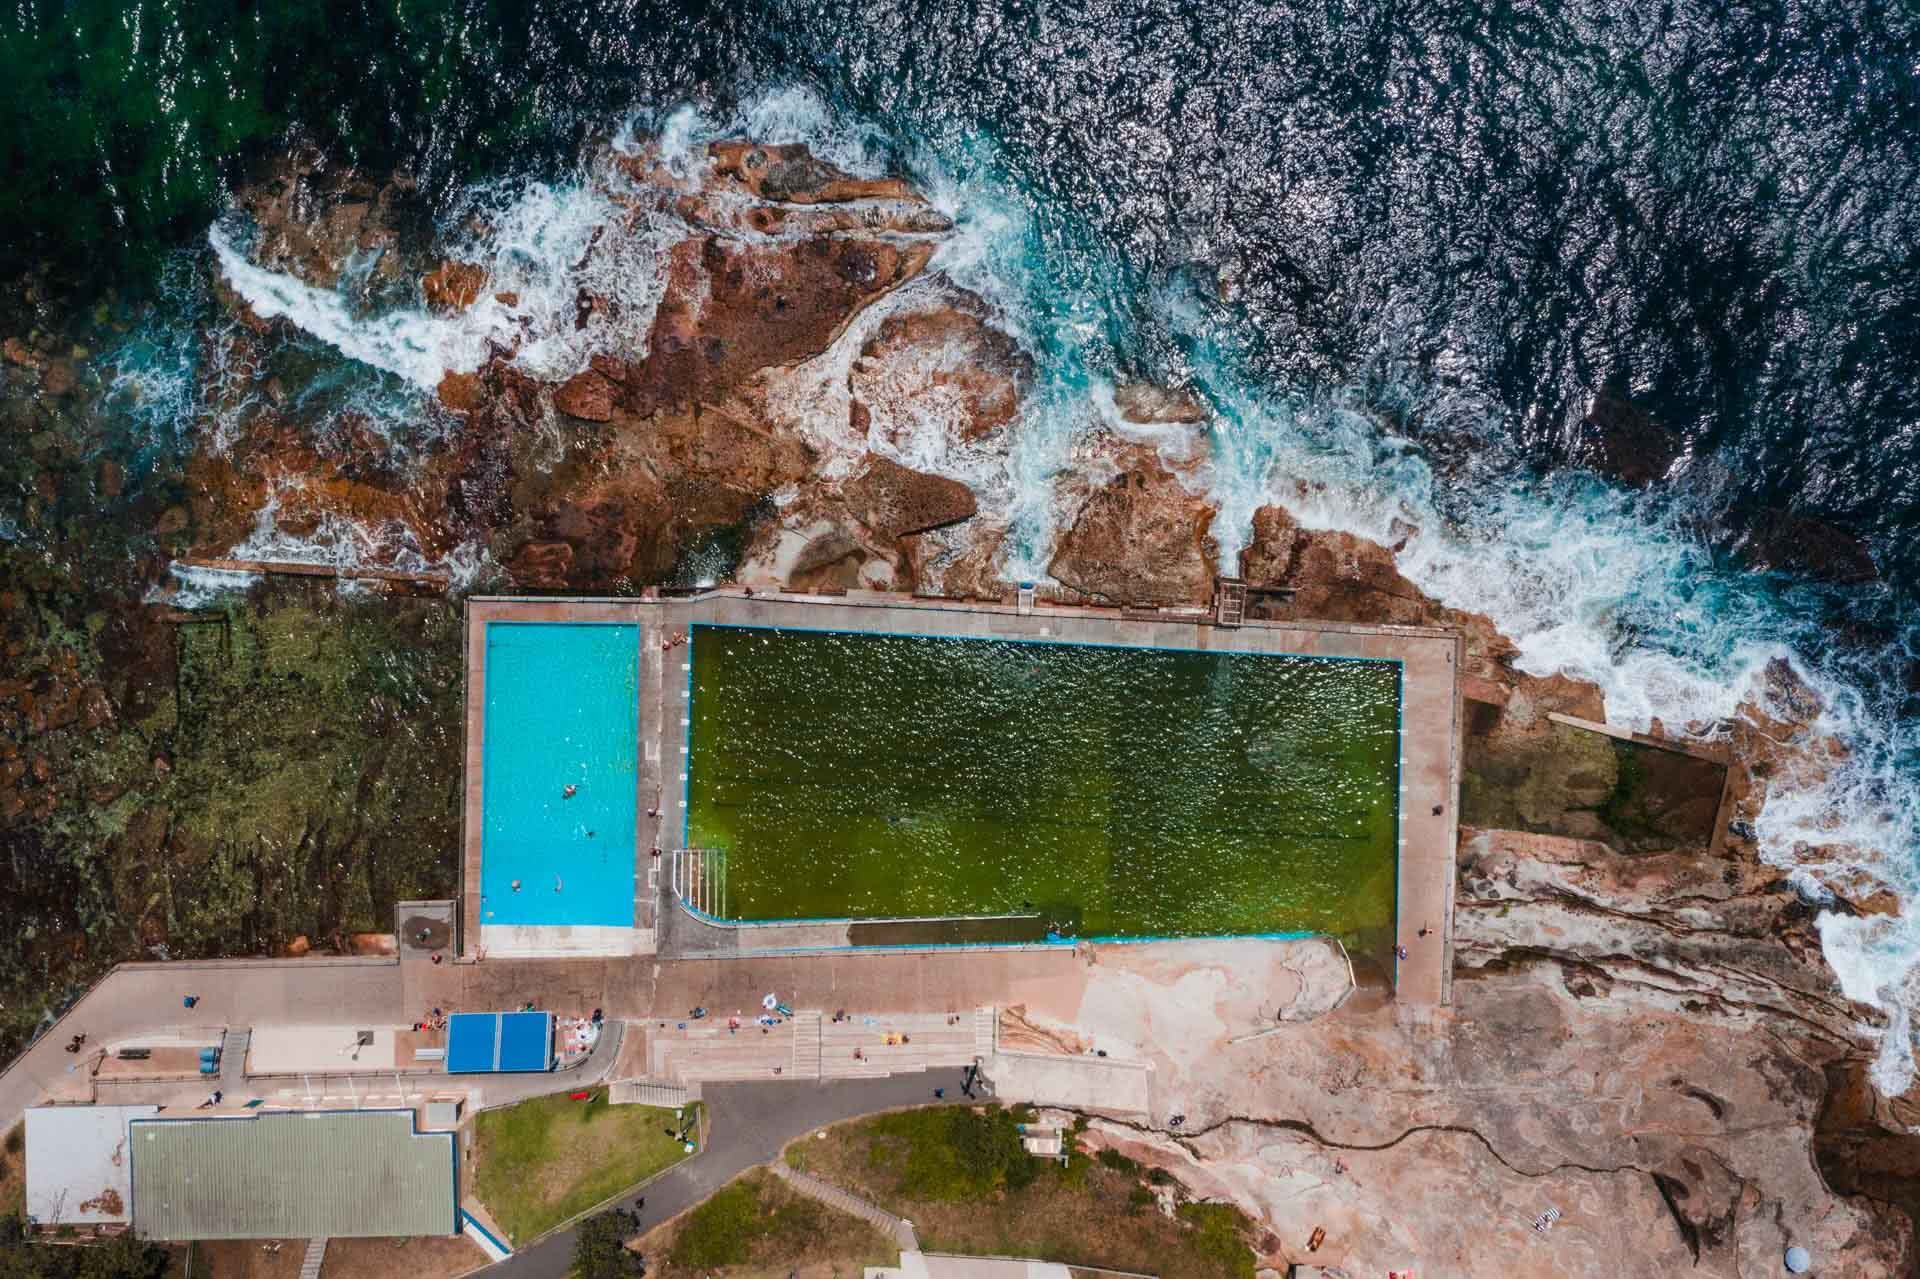 Here's All The Ocean Pools In Sydney's Northern Beaches, Jonathan Tan,Isa Wye Rock Pool, overhead shot, pool, ocean, rocks, waves, beach, sand